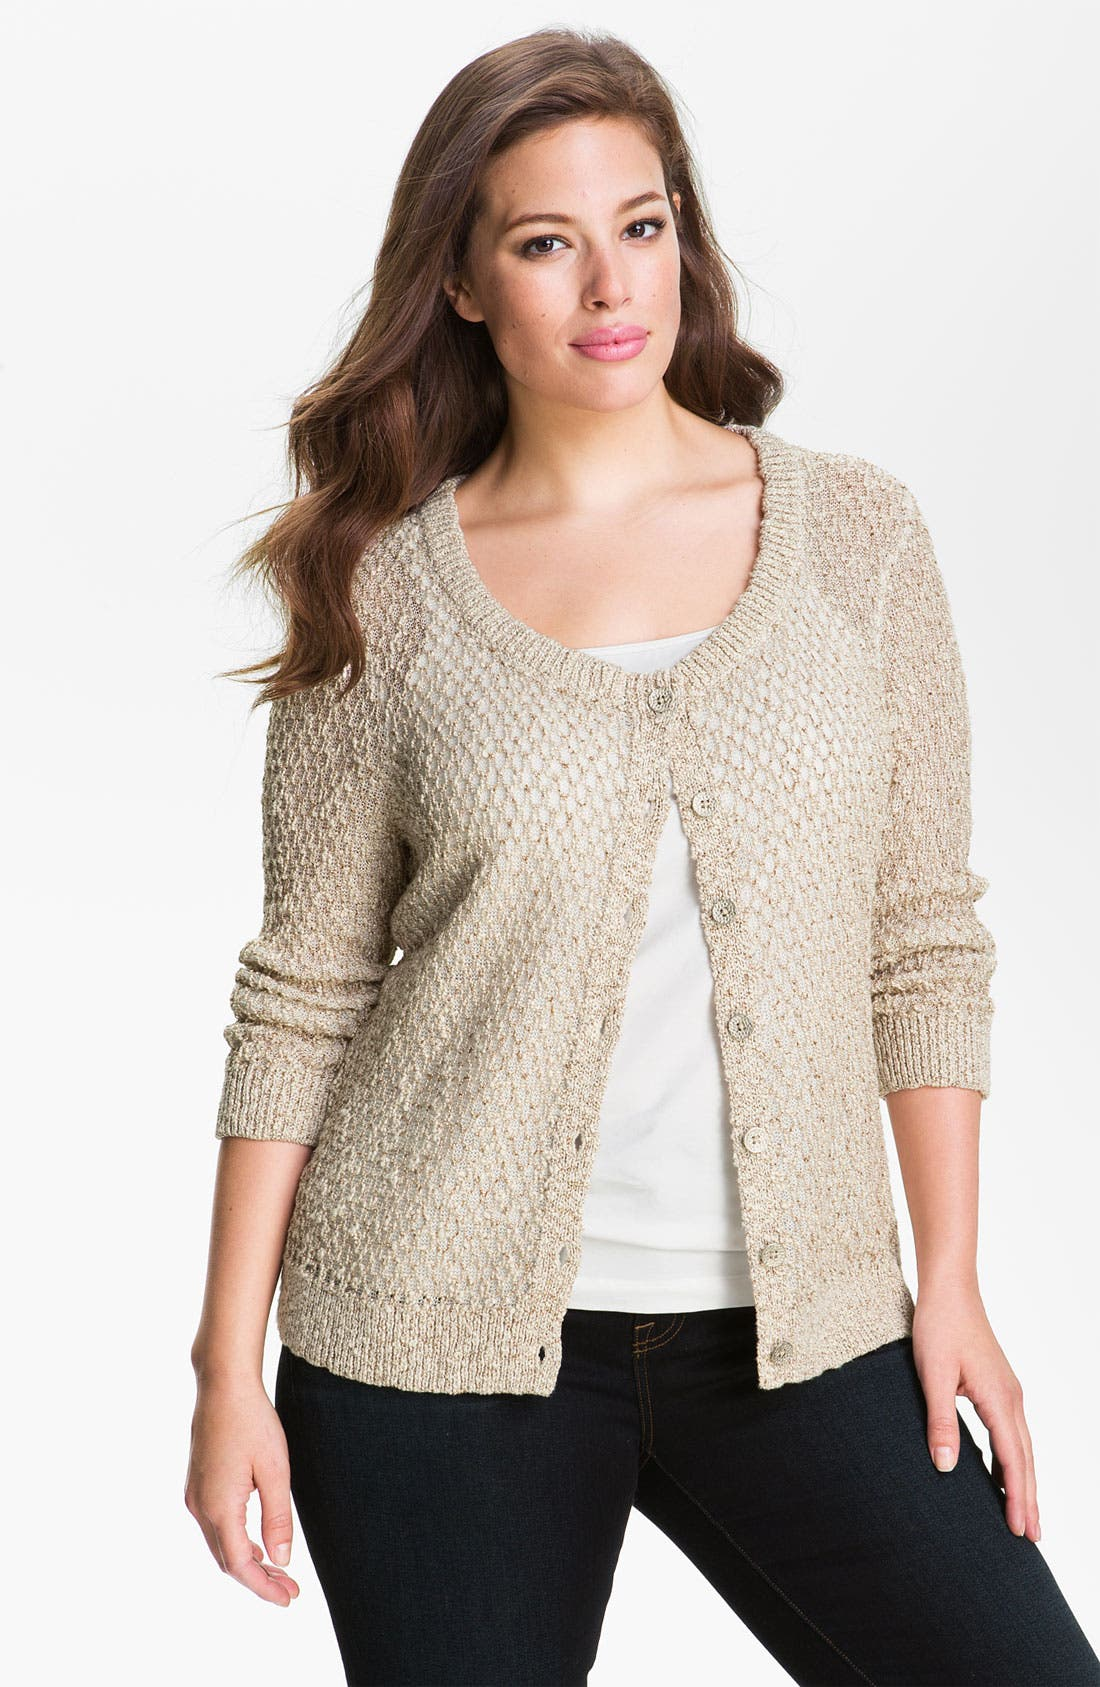 Nic + Zoe 'Shimmer' Cardigan,                             Main thumbnail 1, color,                             250